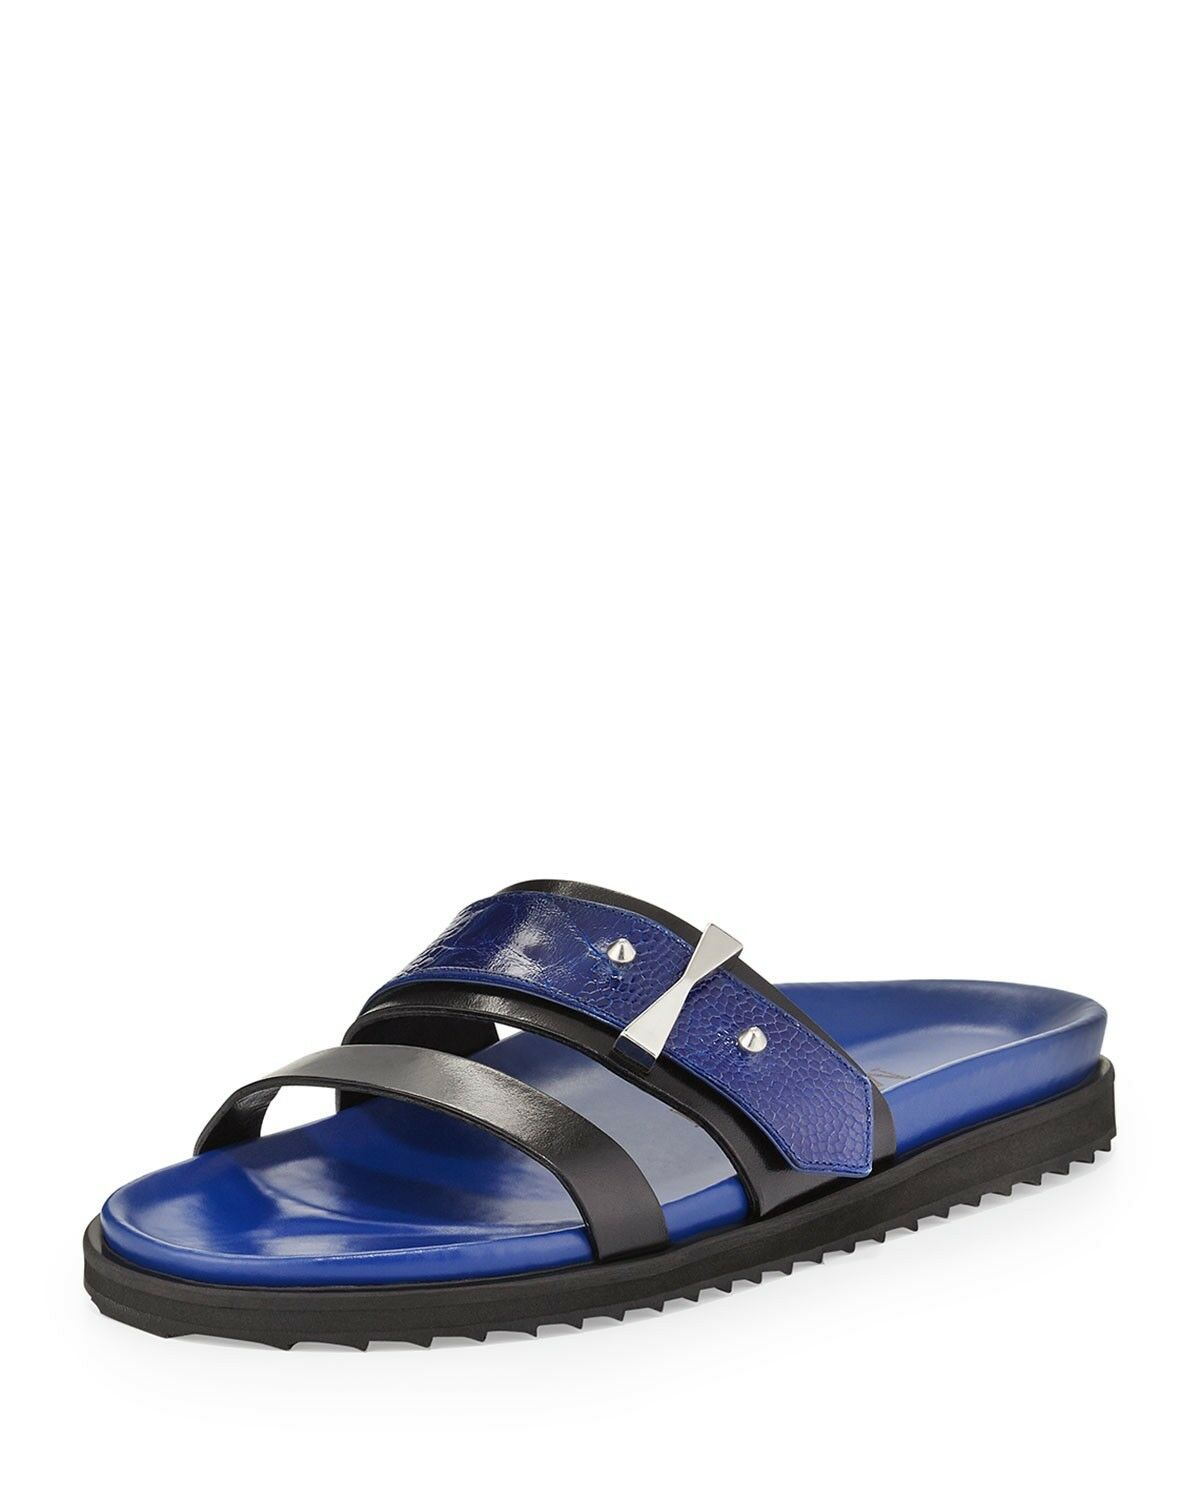 migliore offerta Alexander mcqueen donna blu and and and nero Dimensione 6 new with box studded flats  Senza tasse